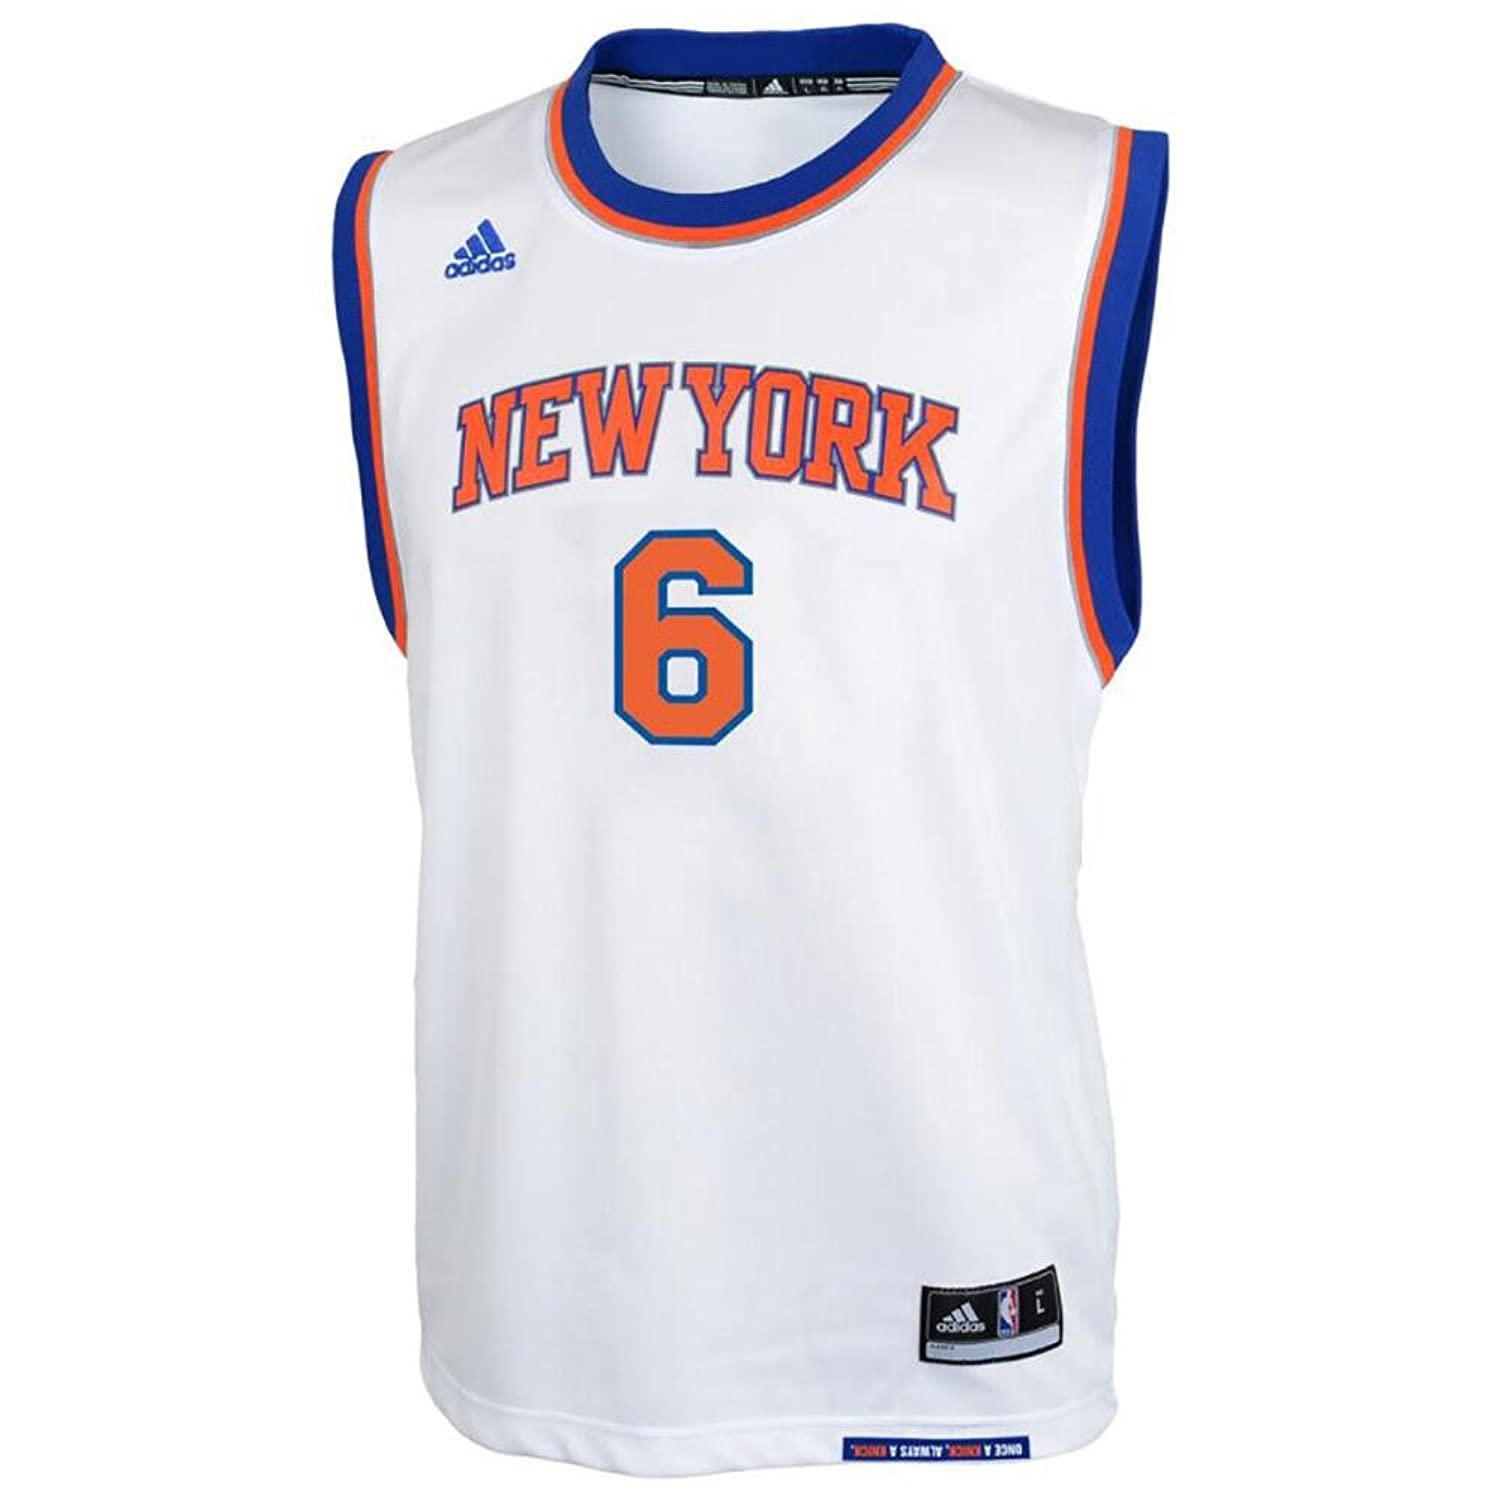 Amazon.com : Kristaps Porzingis New York Knicks #6 NBA Youth Home Jersey (Medium 10/12) : Sports & Outdoors